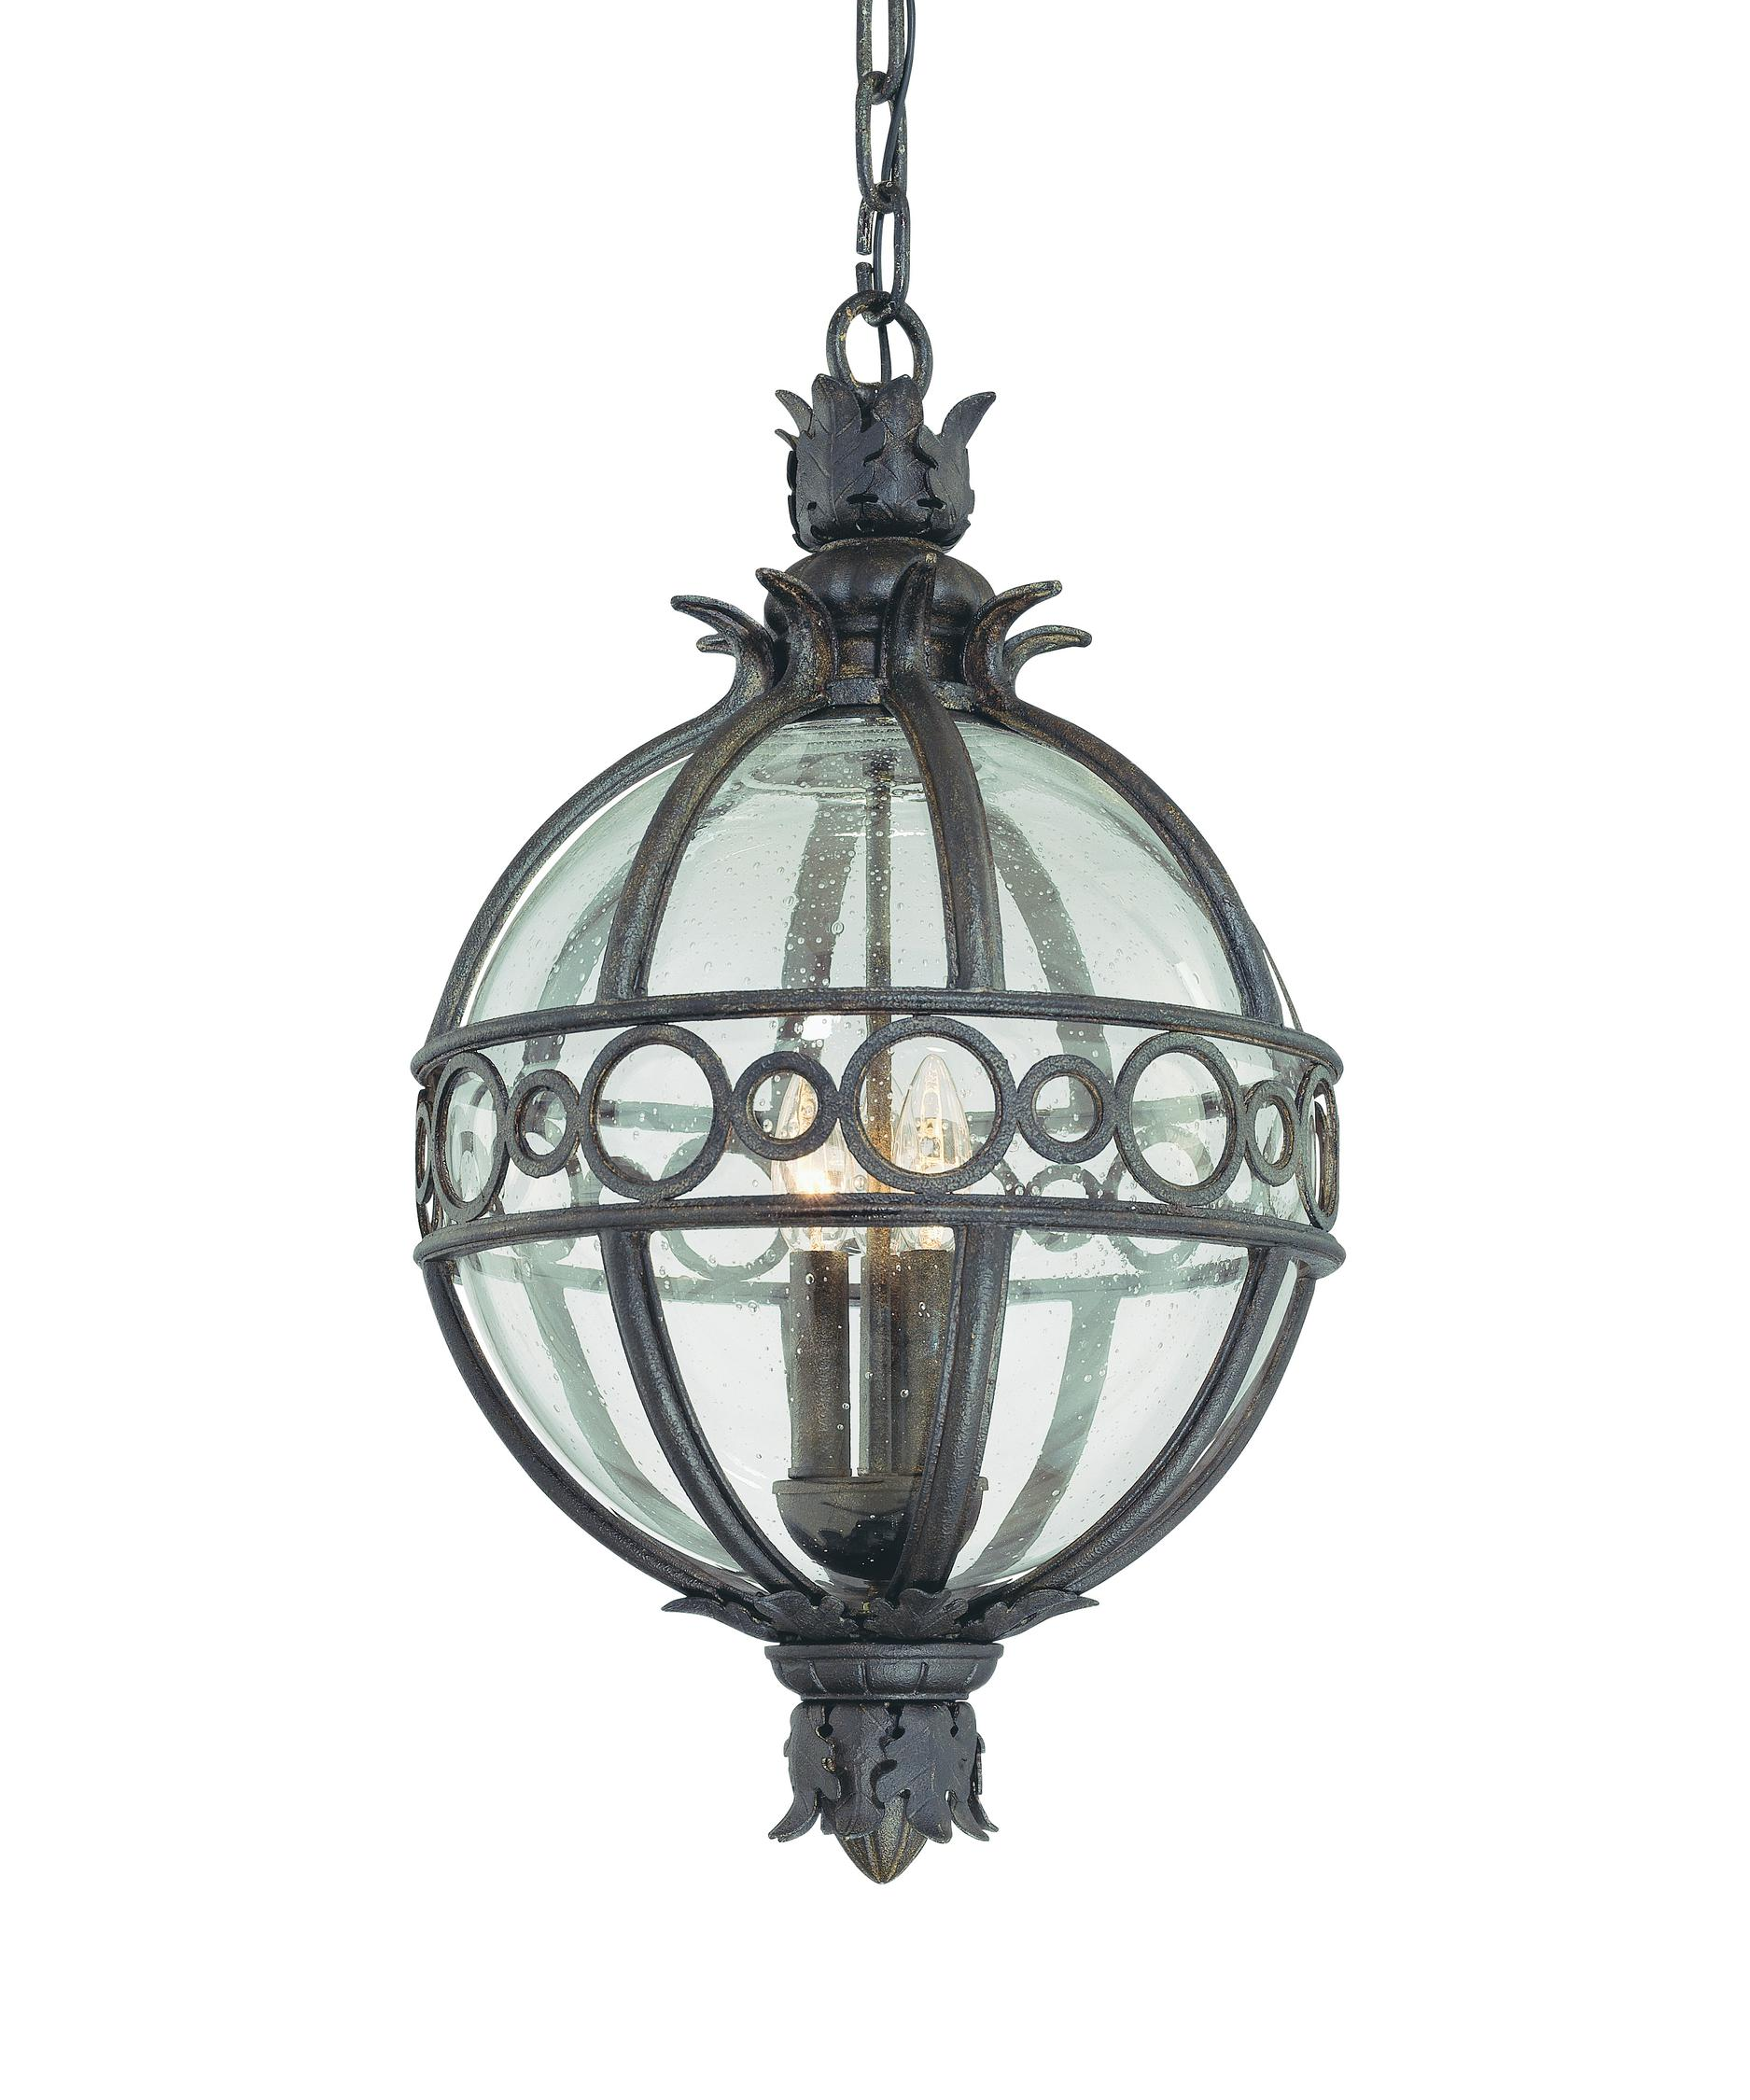 Outdoor hanging lighting - Shown In Campanile Bronze Finish And Clear Seedy Glass